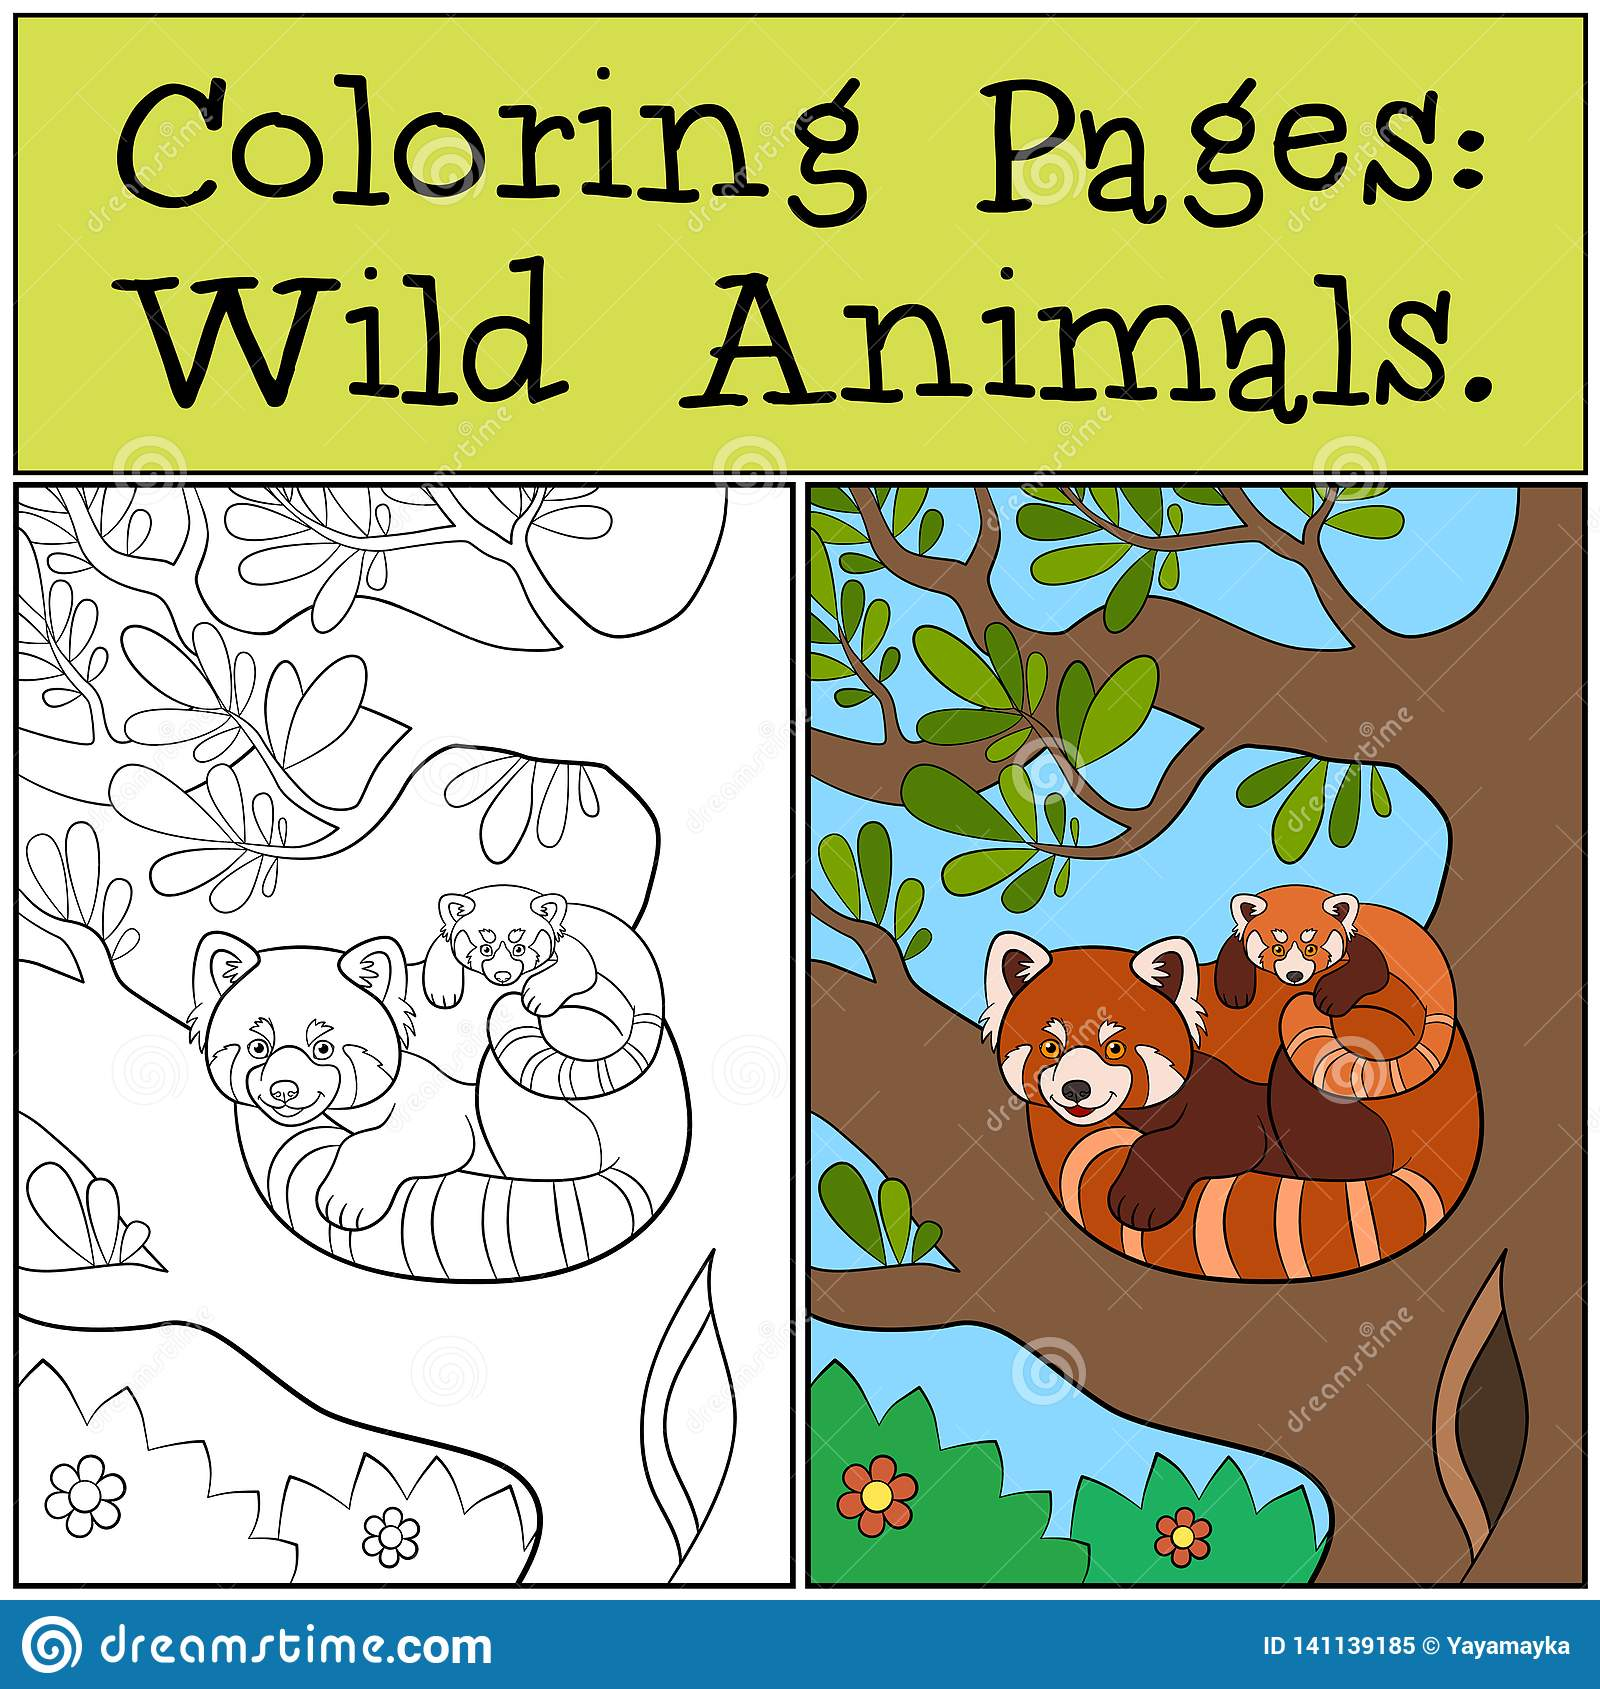 Coloring Pages Wild Animals Little Cute Red Panda Smiles Stock Vector Illustration Of Black Chinese 141139185